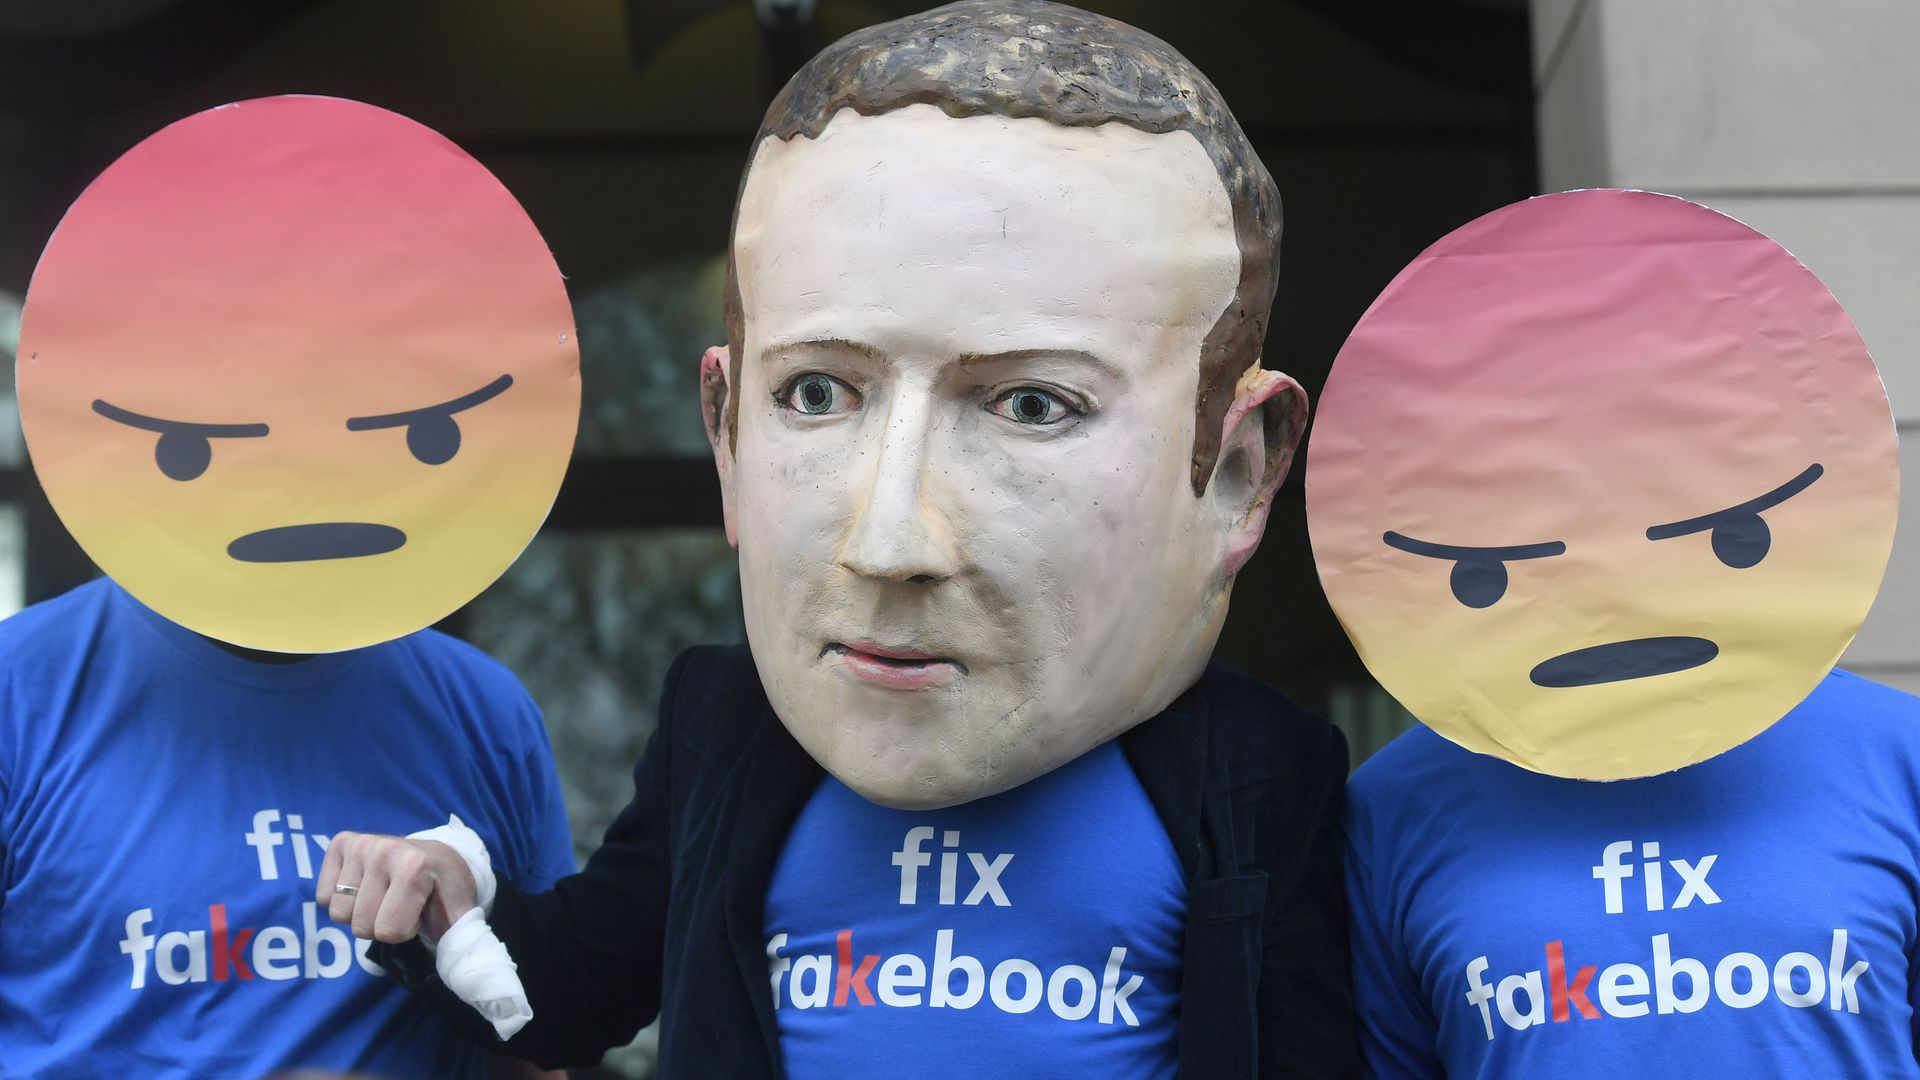 Giant puppet head of Mark Zuckerberg worn by a protester in London